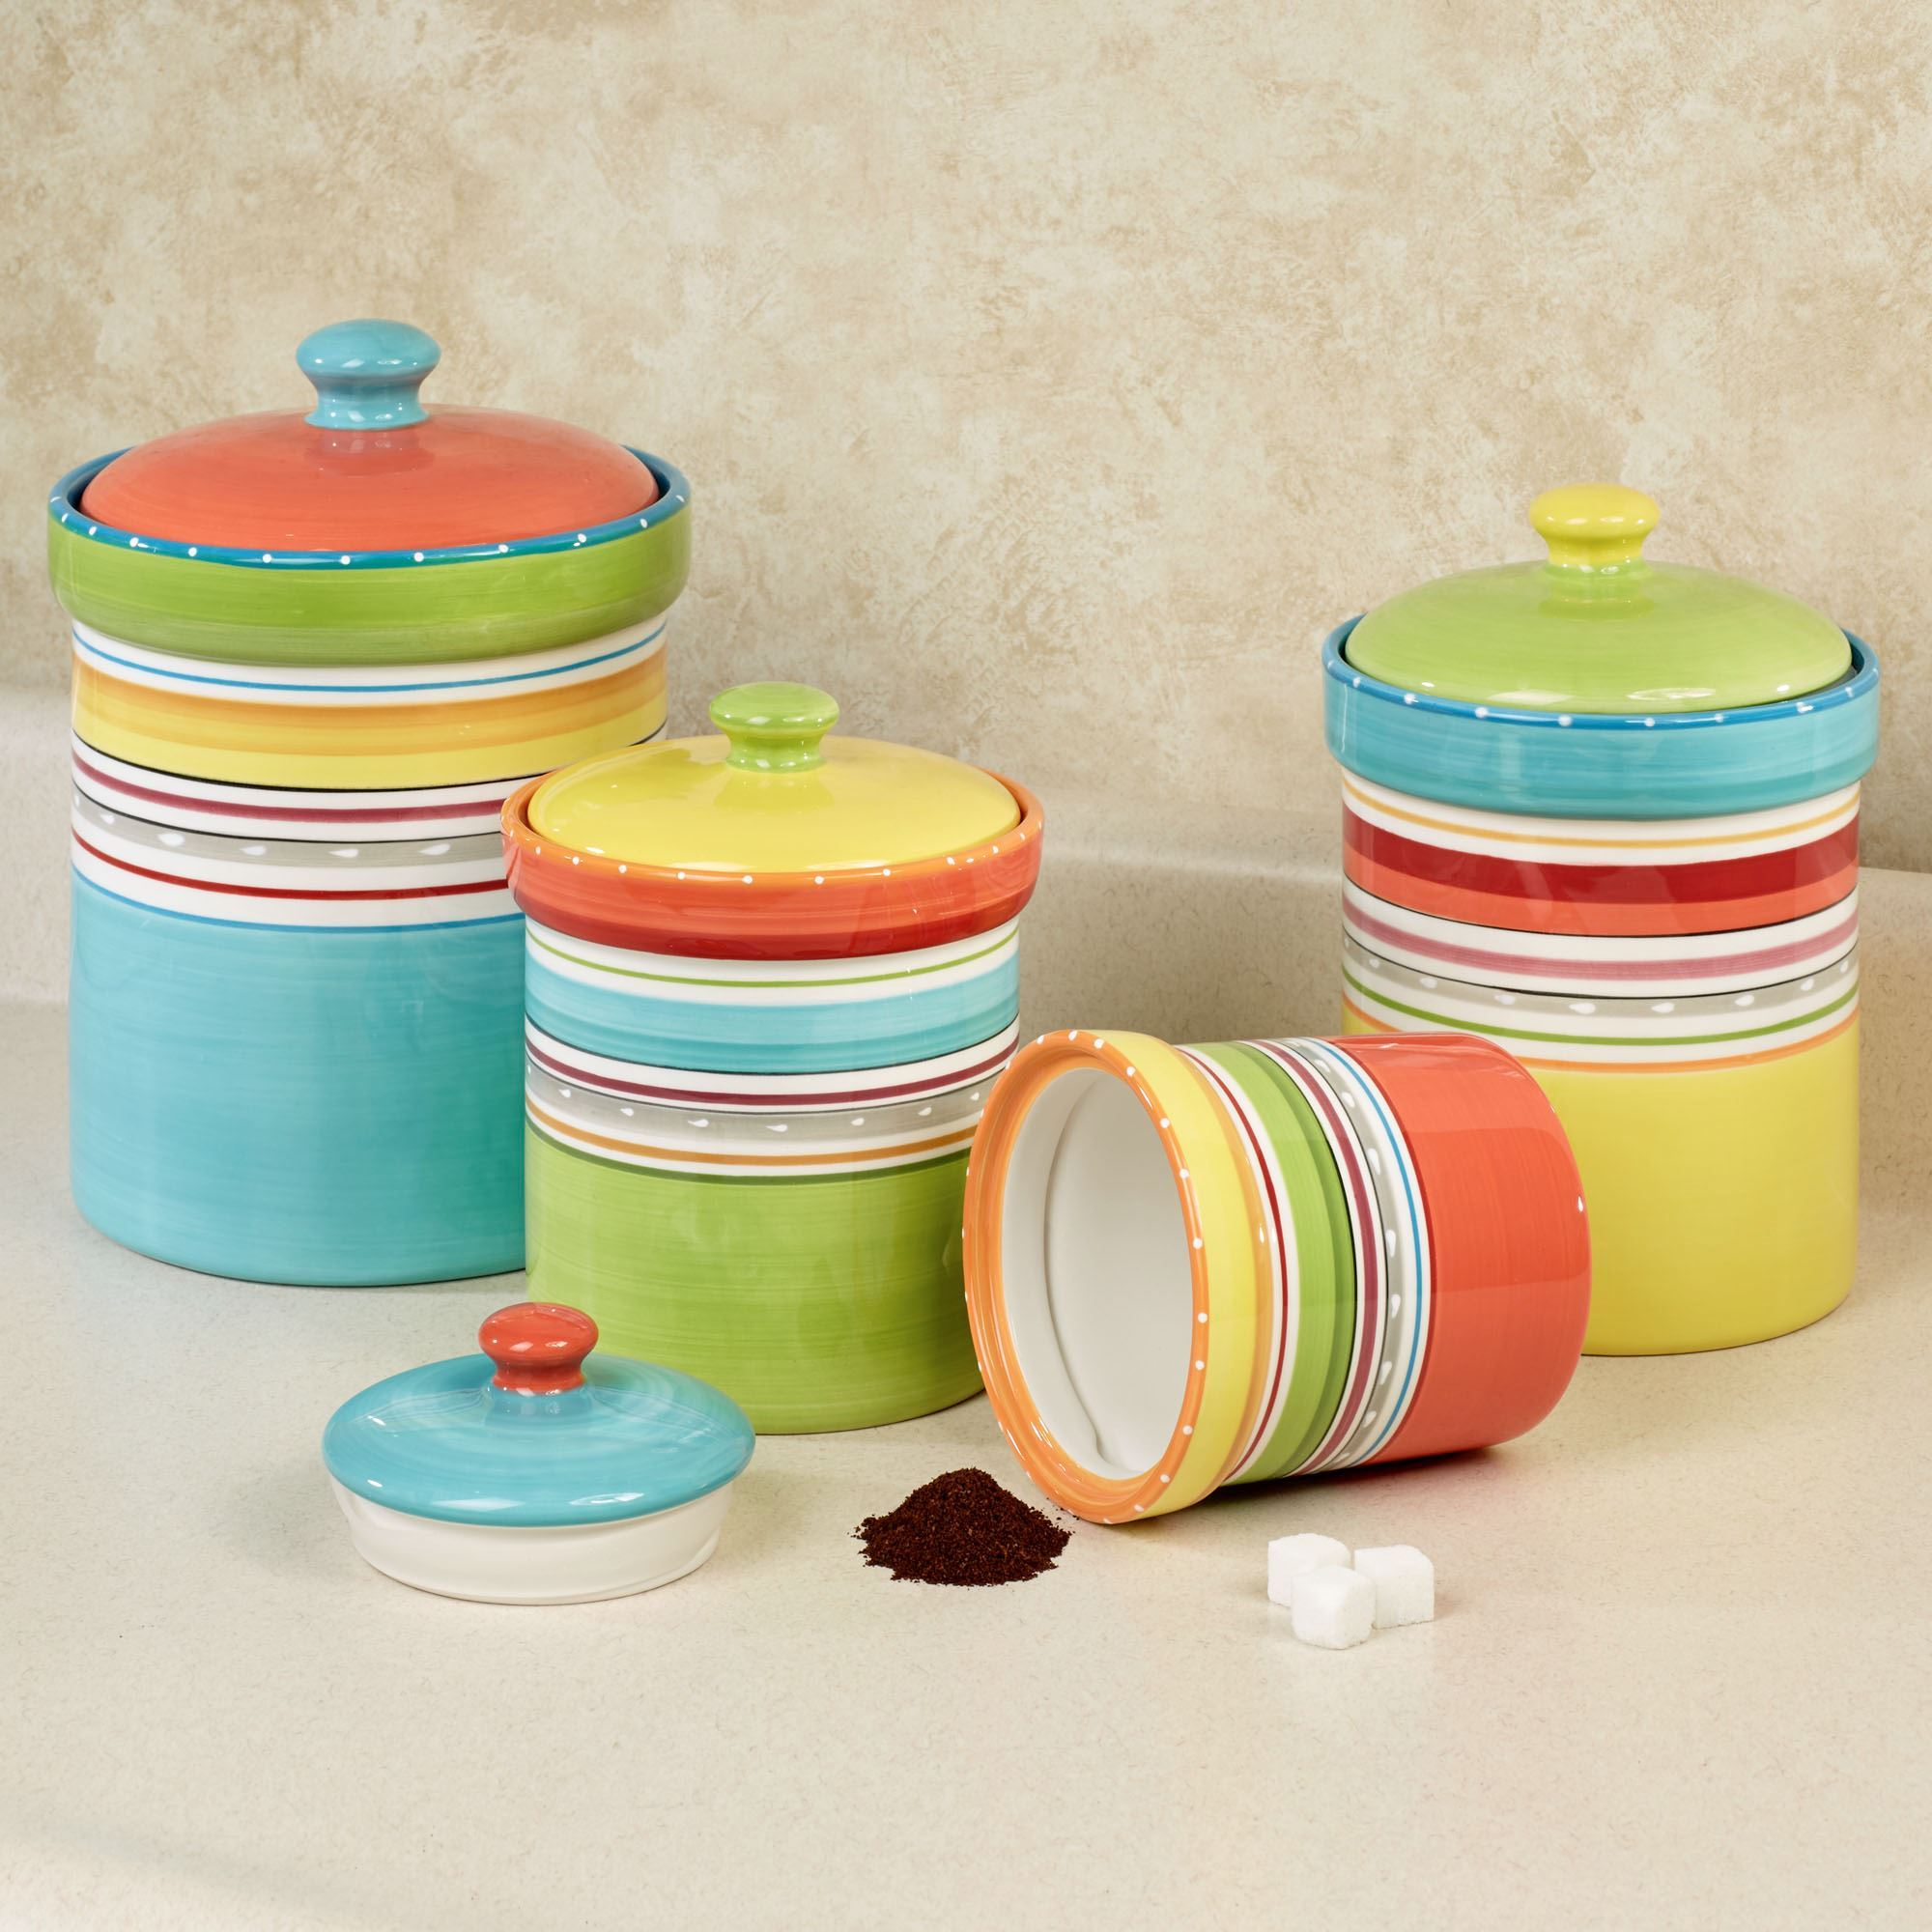 Mariachi Striped Colorful Kitchen Canister Set